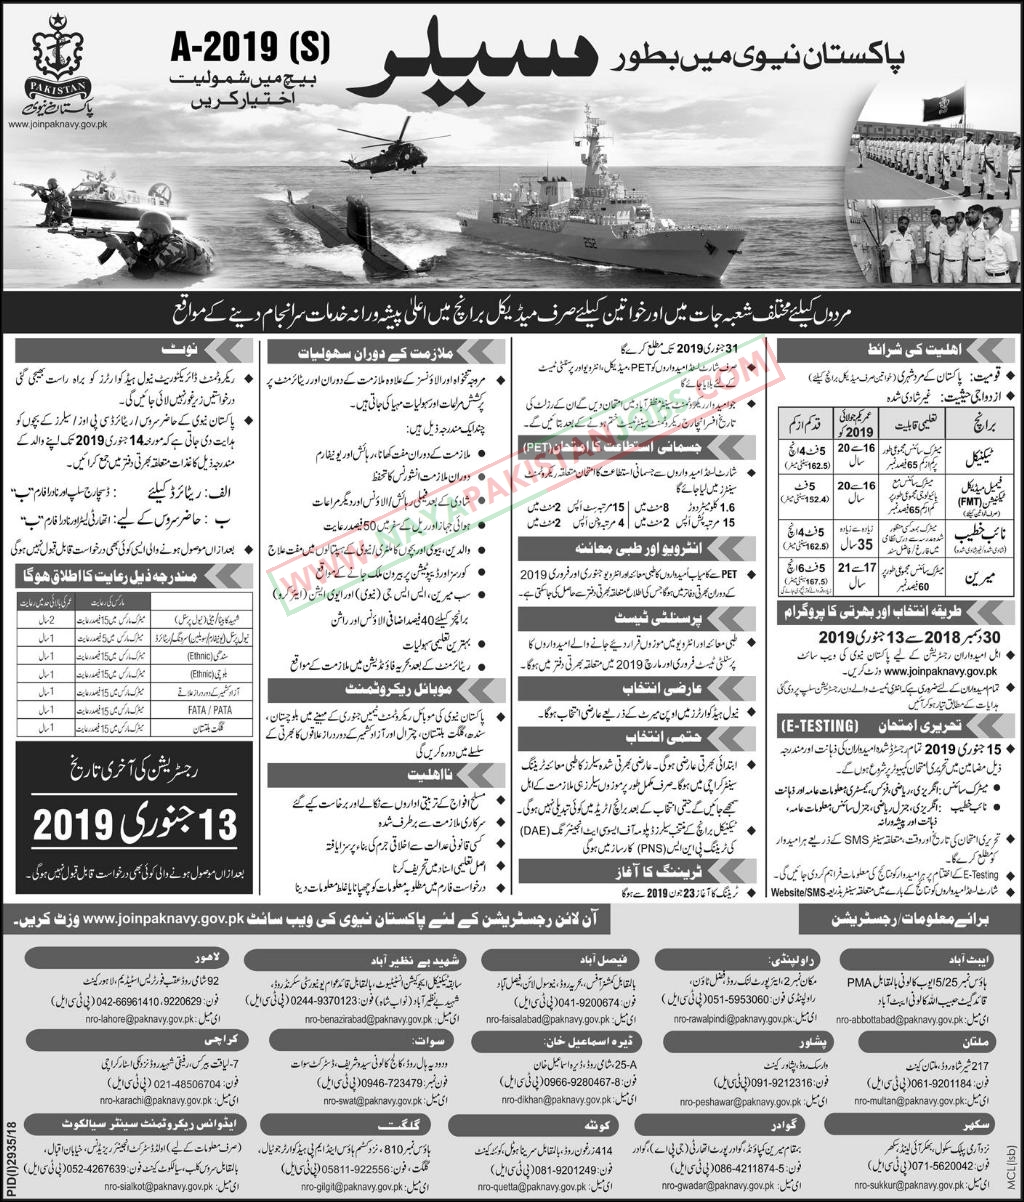 Join pak navy 2019, pak navy jobs sailor 2019 , new pak navy jobs 30 dec 2018, joinpaknavy.gov.pk Naib khateeb